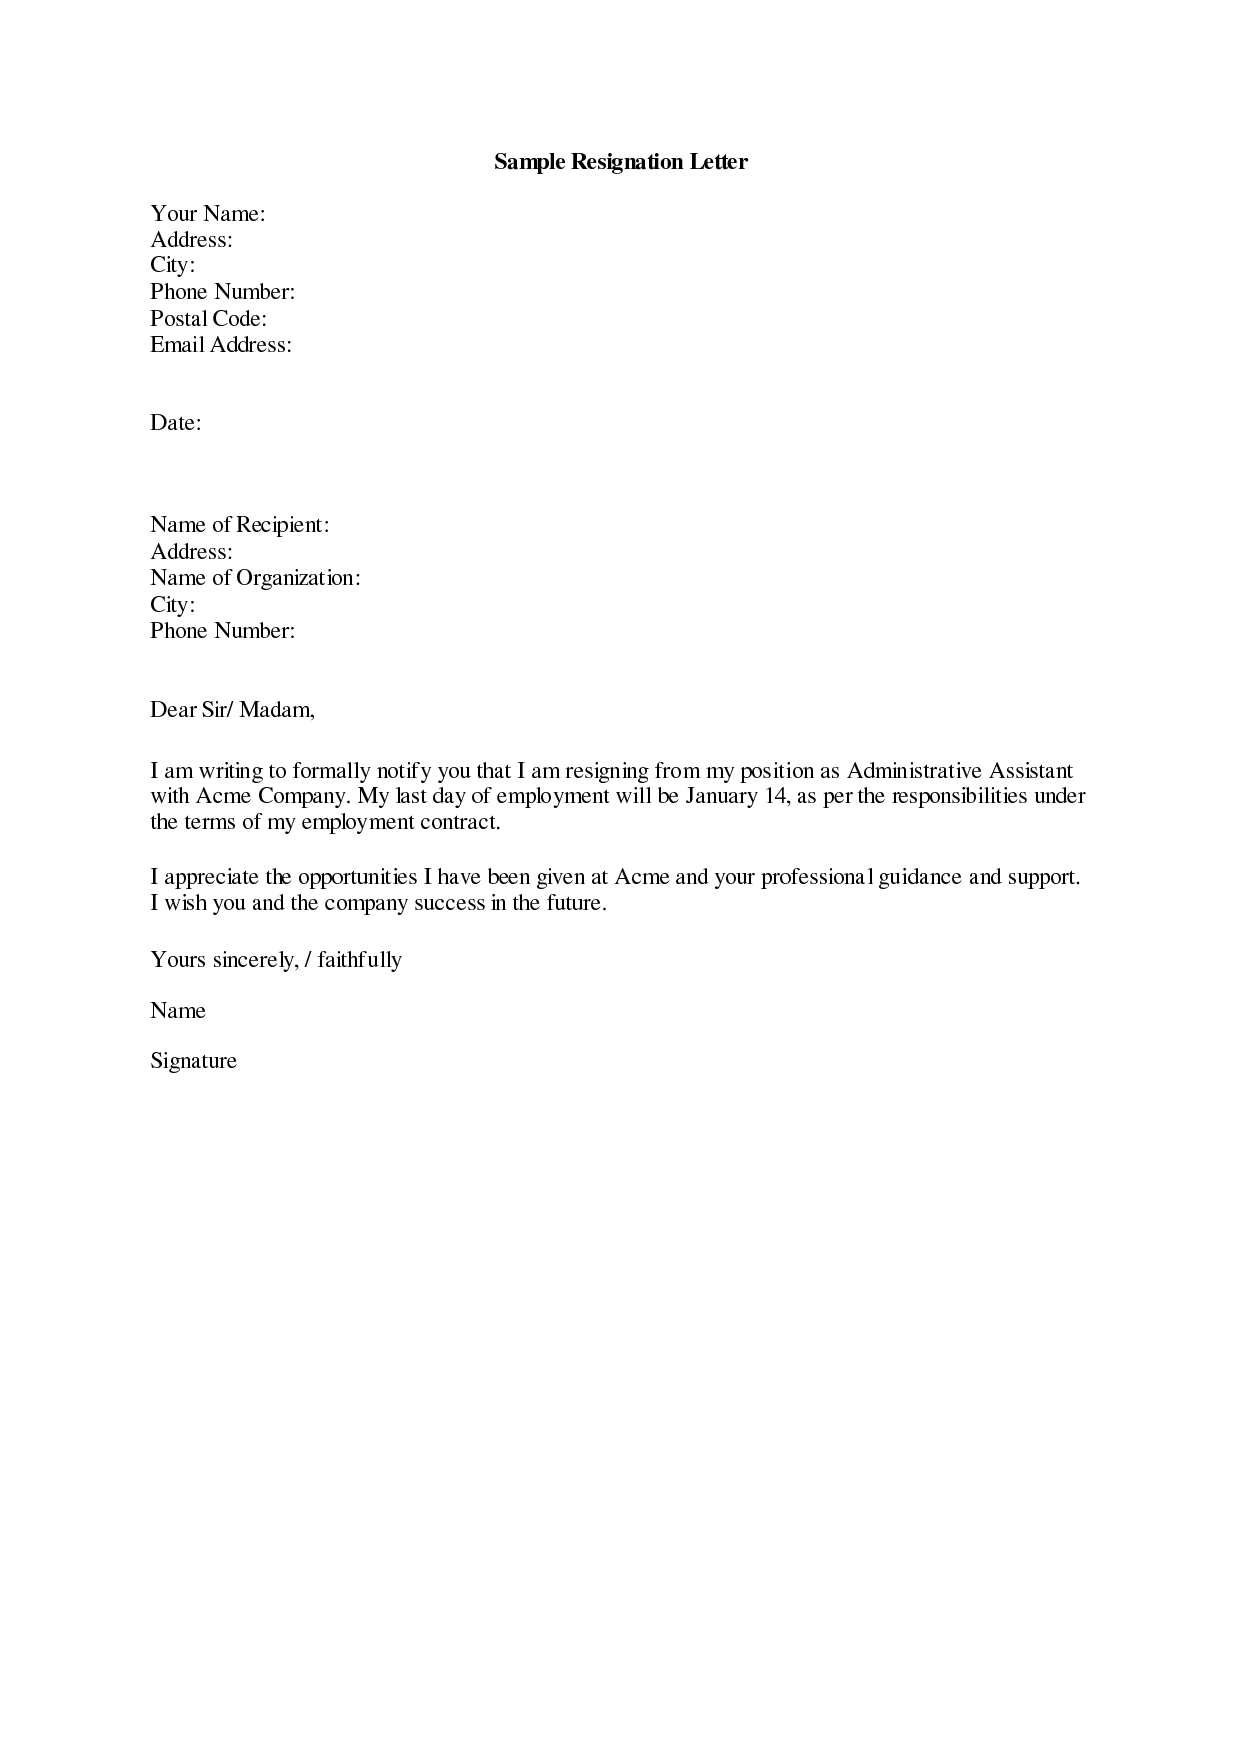 resignation-letter-sample-19 ... - letter of resignation | ankit ...